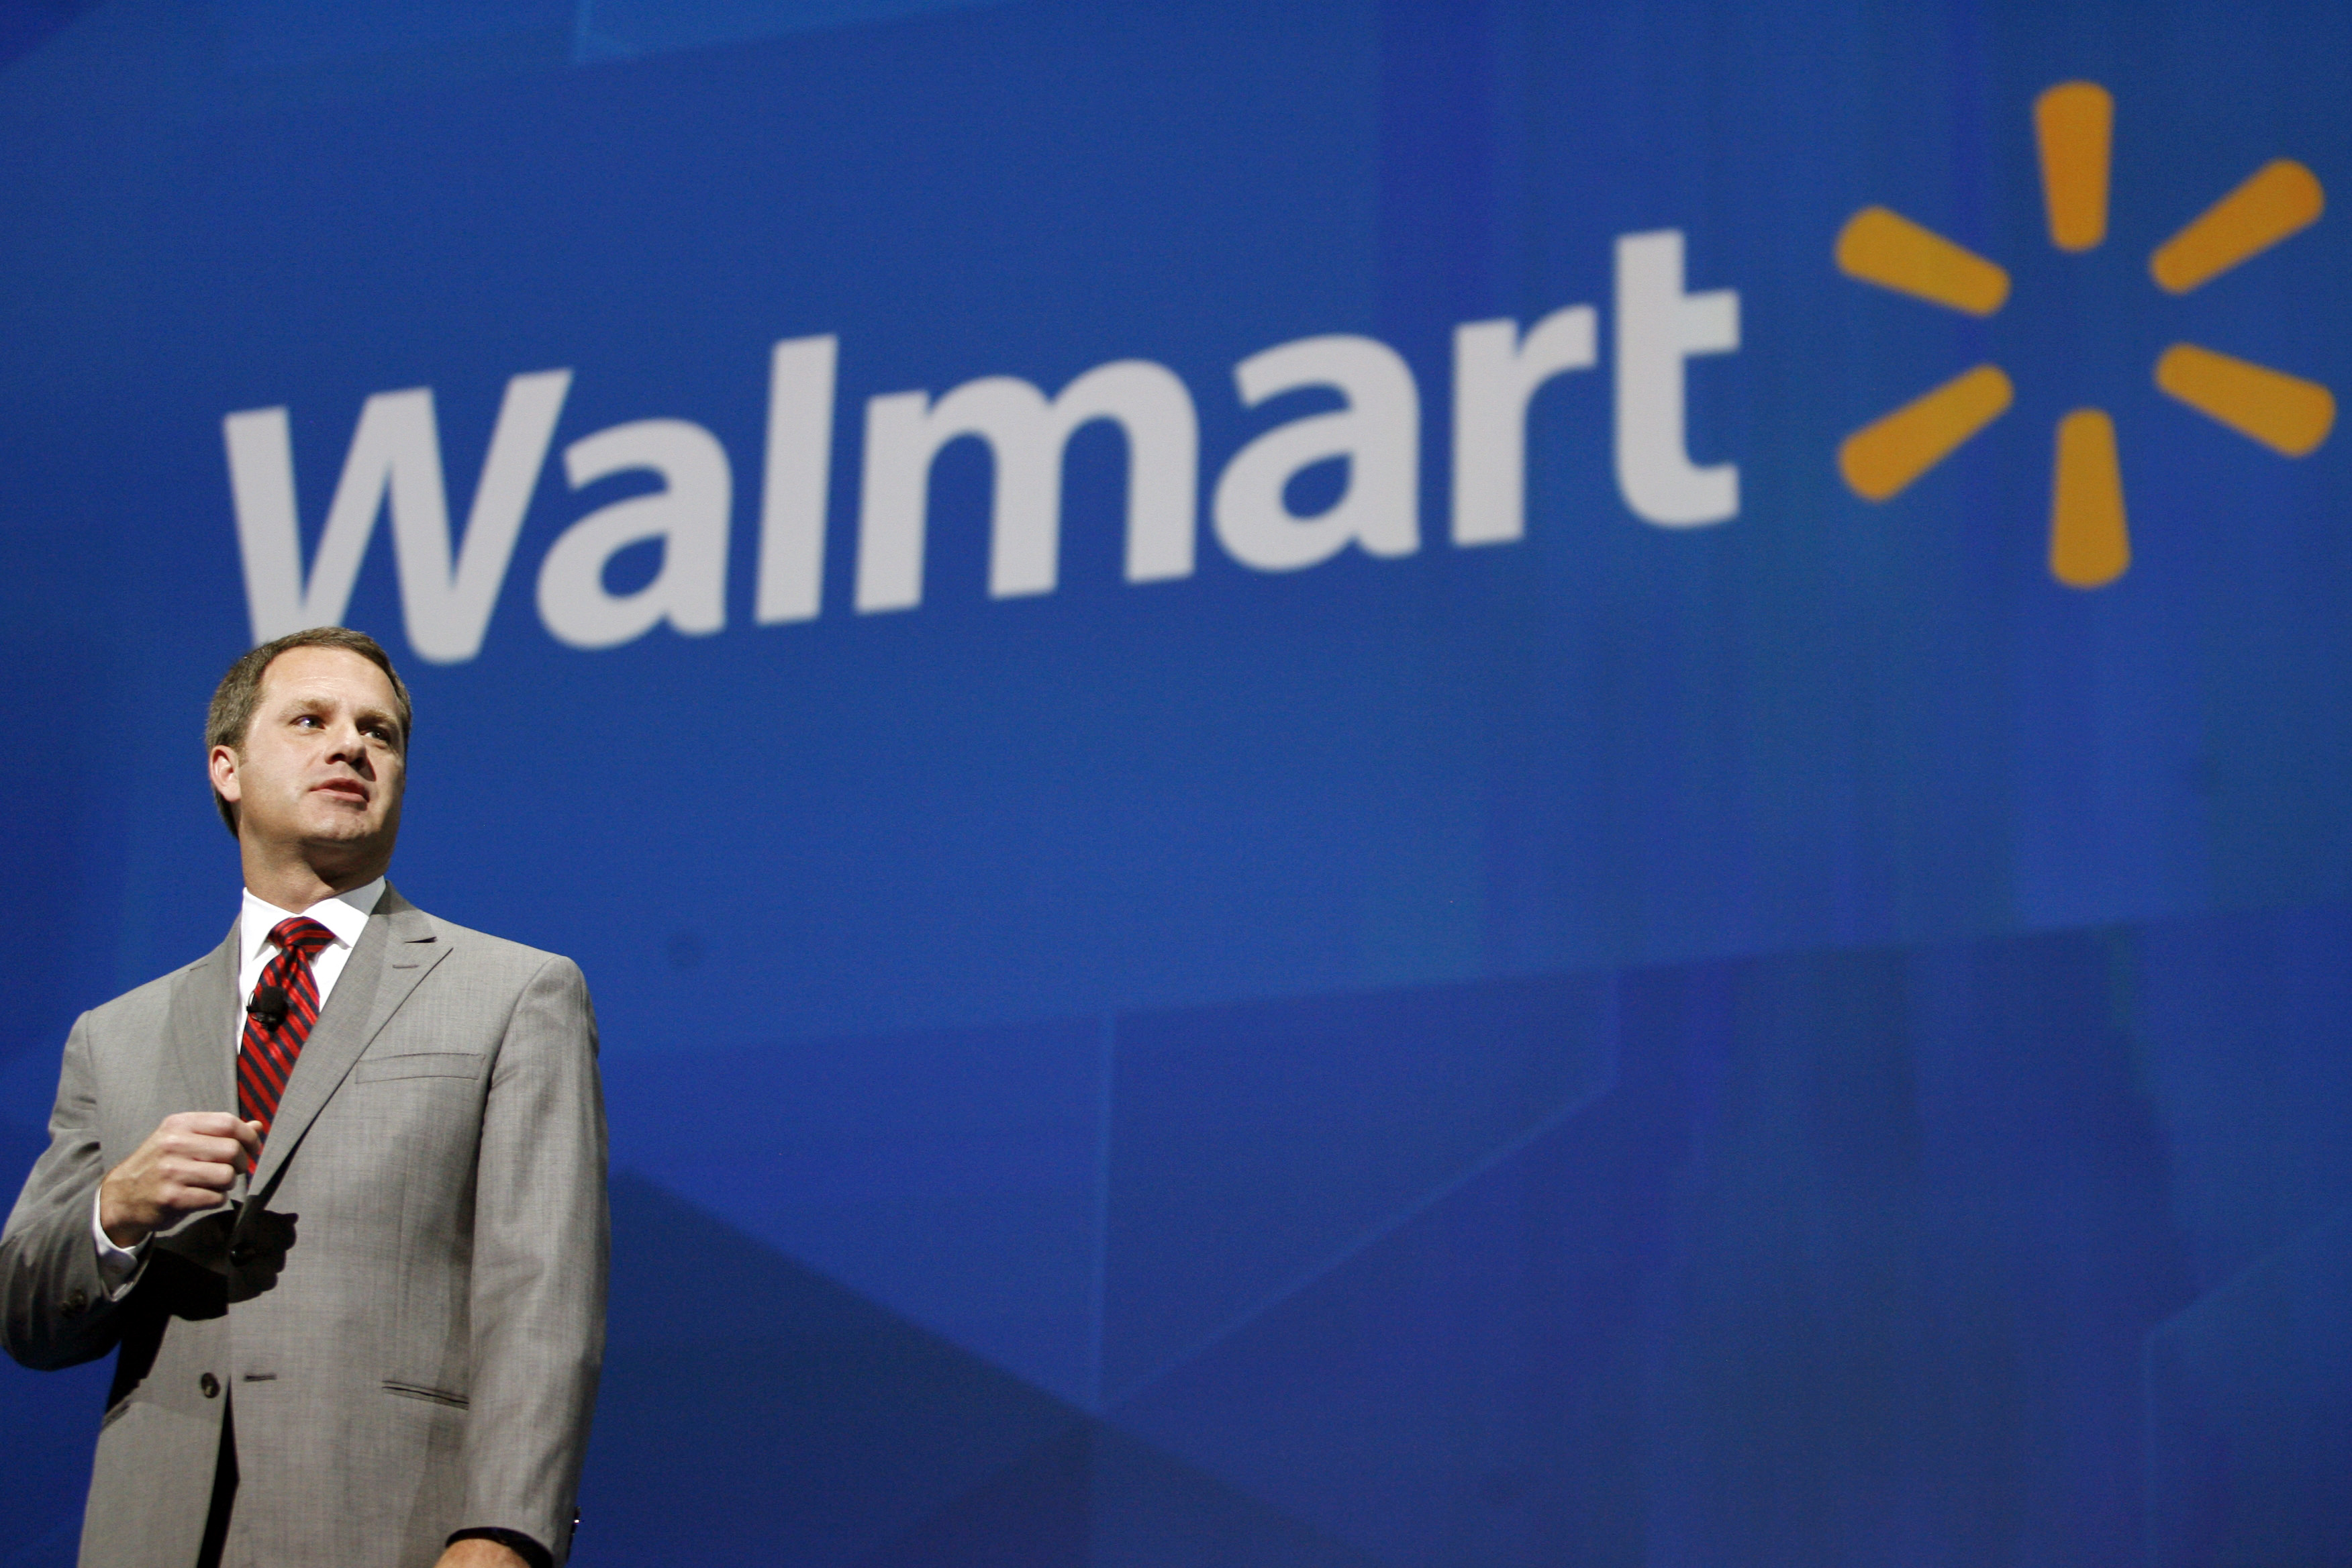 Doug McMillon, President and CEO, Wal-Mart International, speaks at the shareholders meeting in Fayetteville, Ark., on June 7, 2013.